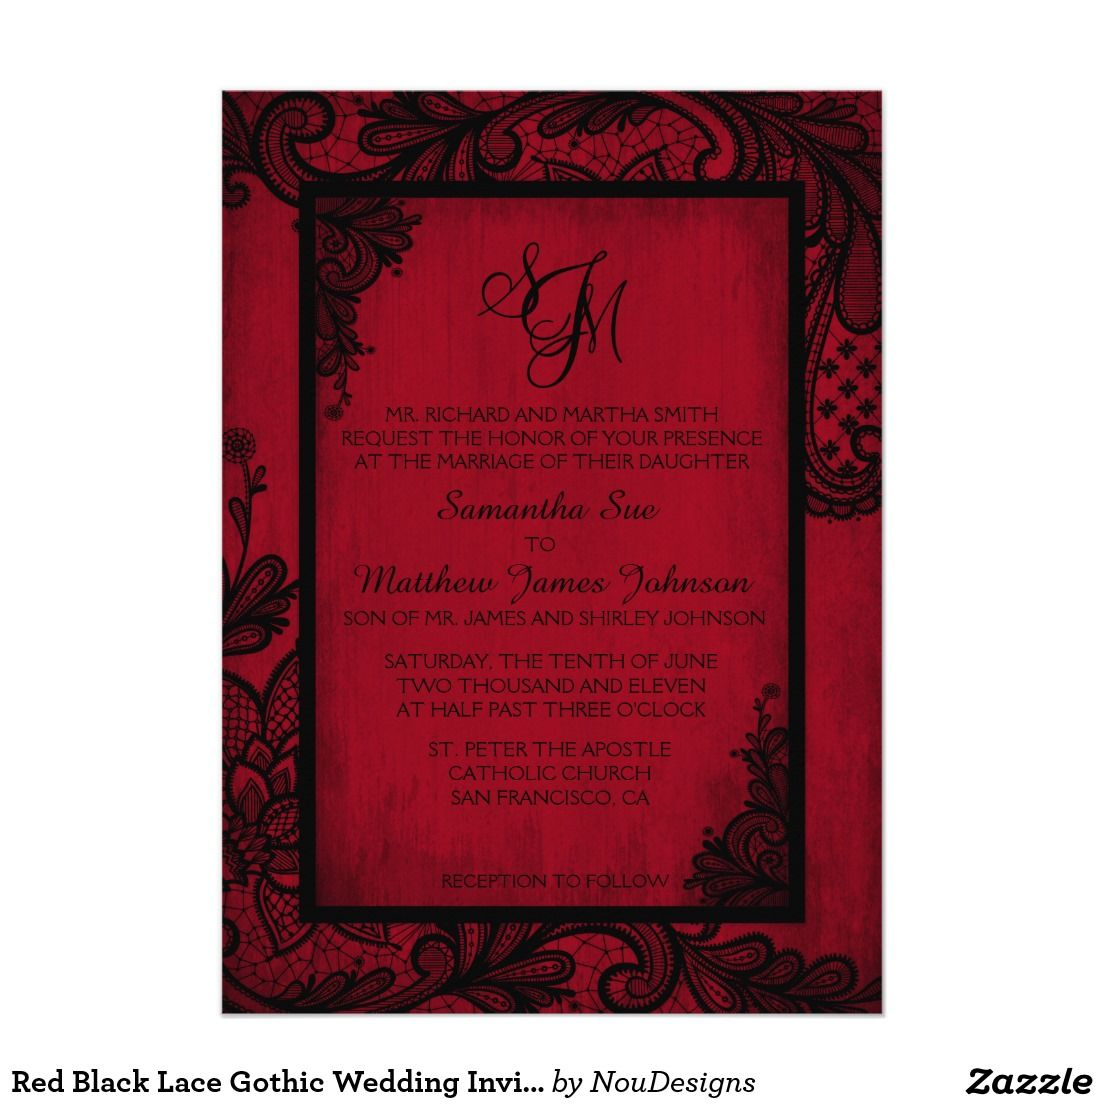 Red Black Lace Gothic Wedding Invitation Card | Pinterest | Gothic ...